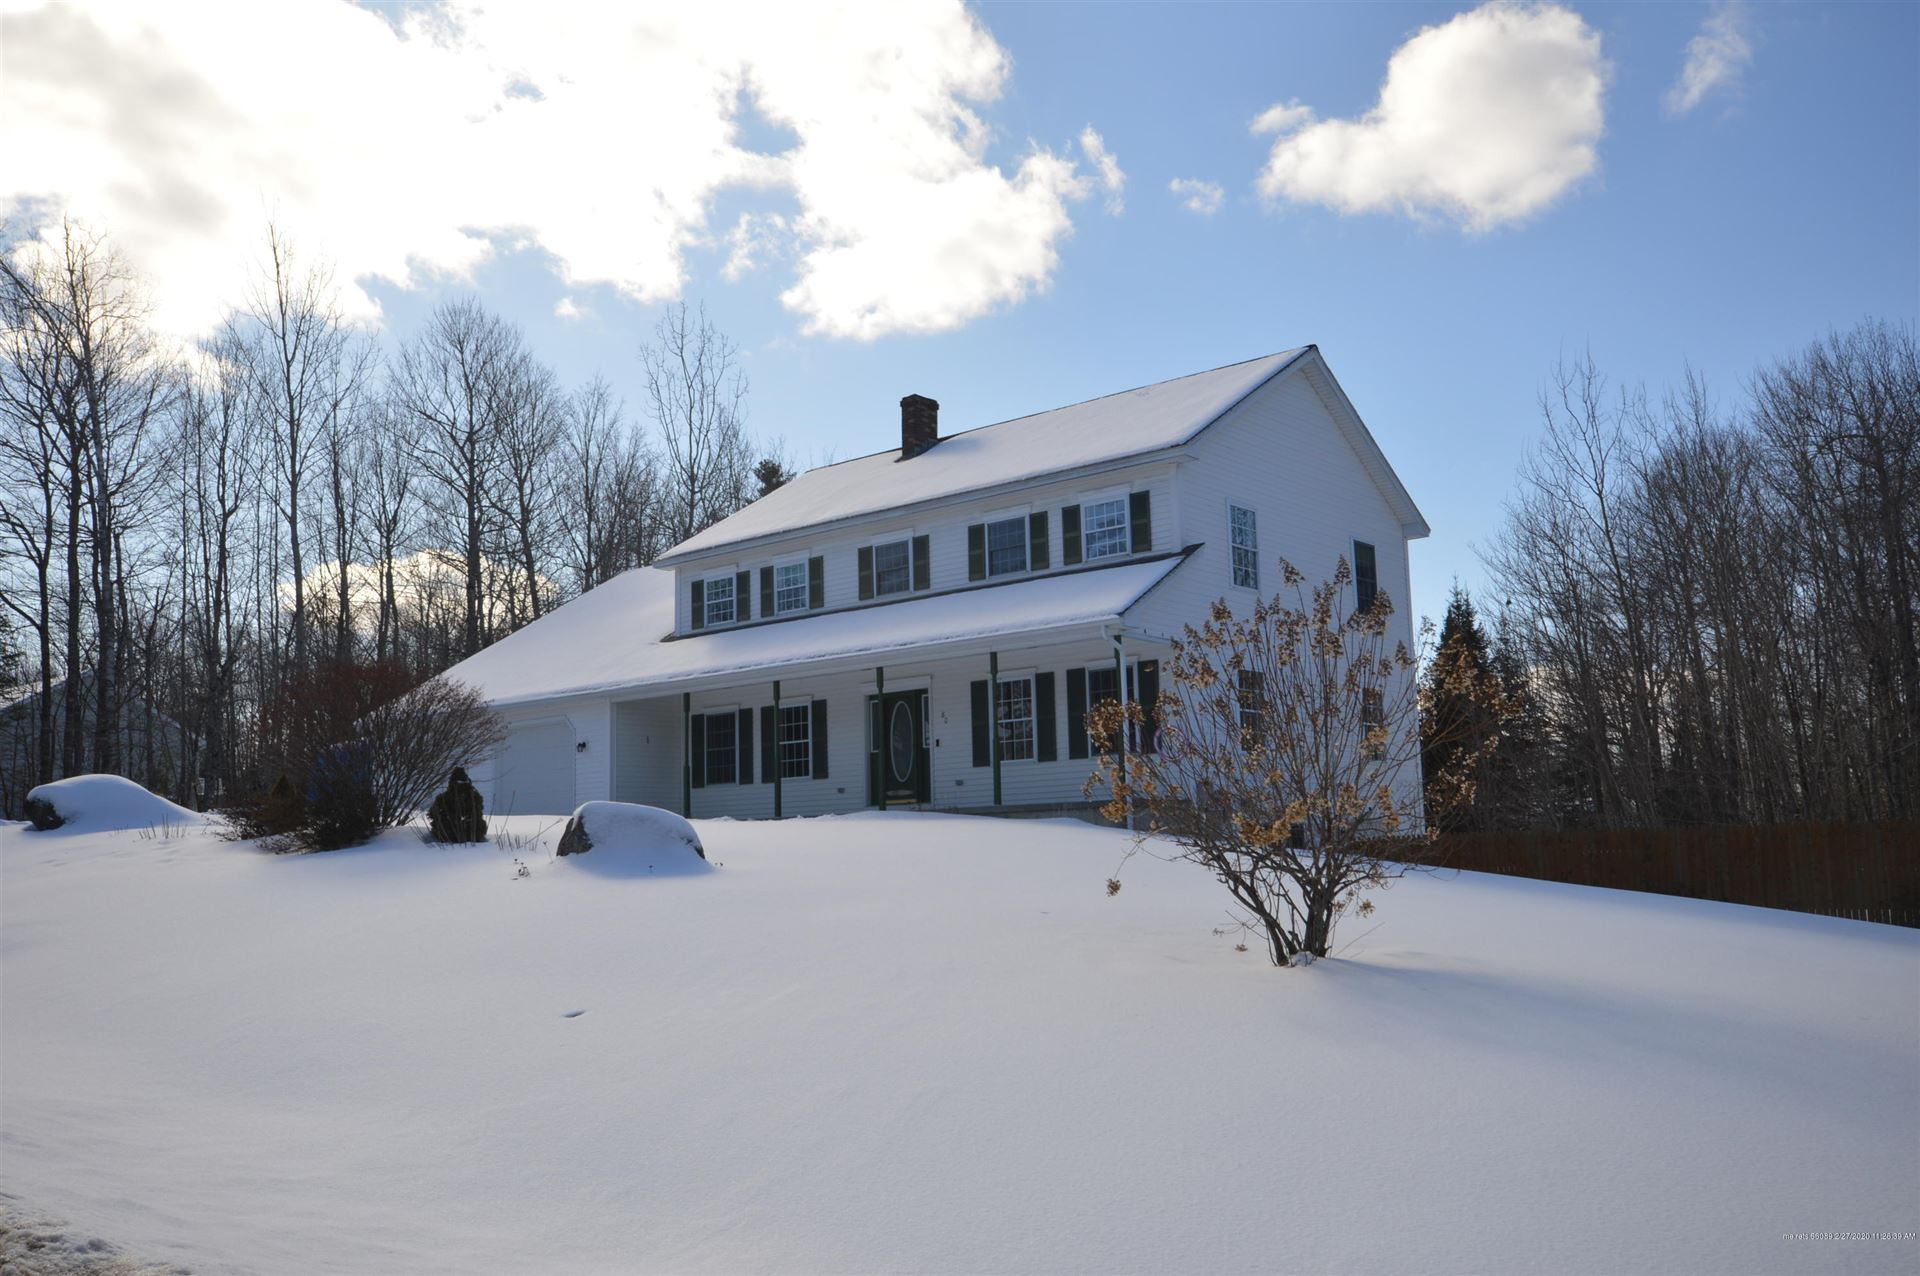 Photo of 80 Homsted Lane, Hermon, ME 04401 (MLS # 1444927)